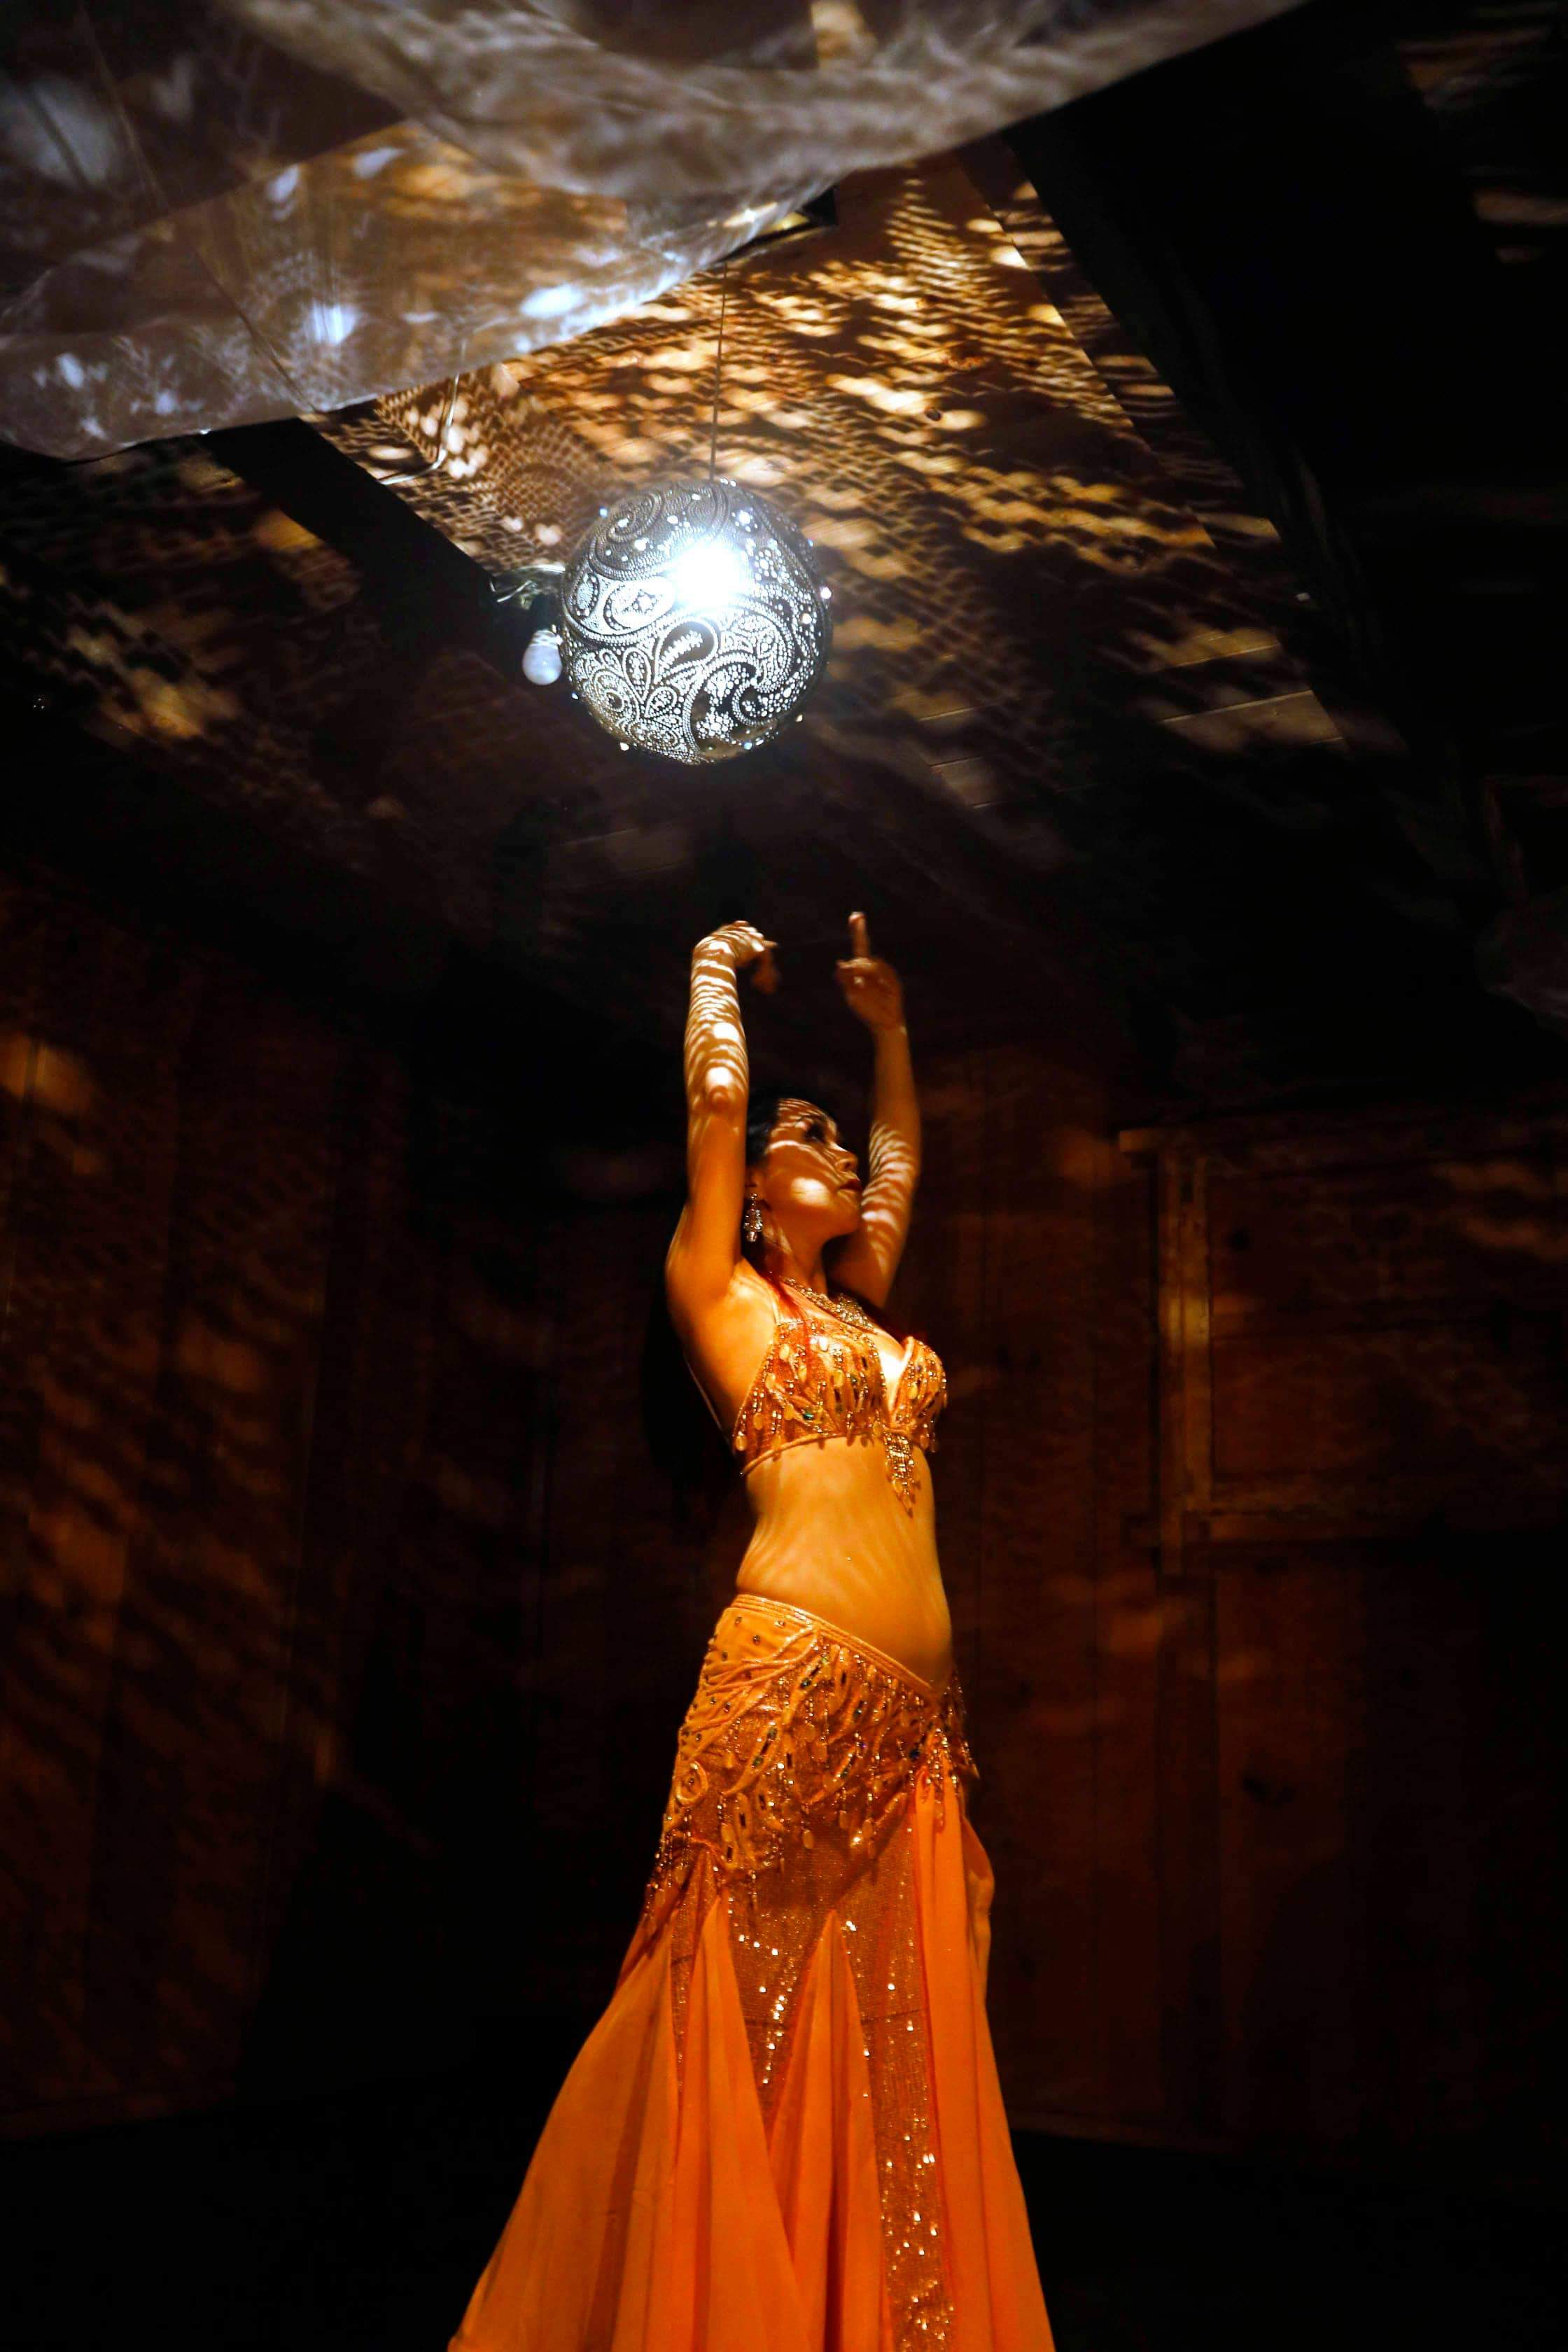 bellydanceshow_yellowdress_handsup